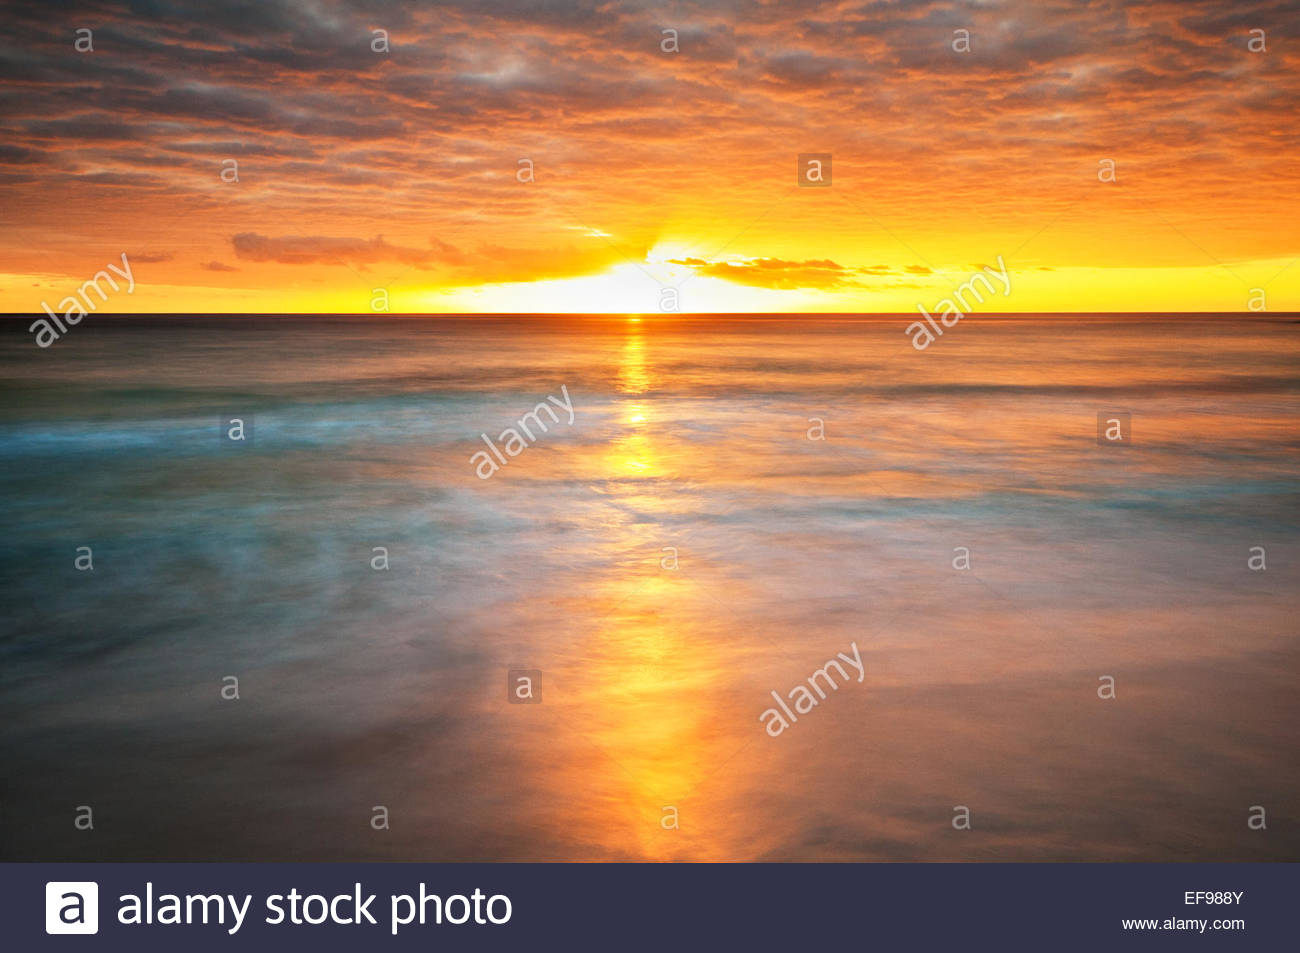 Sunrise over the ocean at Bay of Fires. - Stock Image